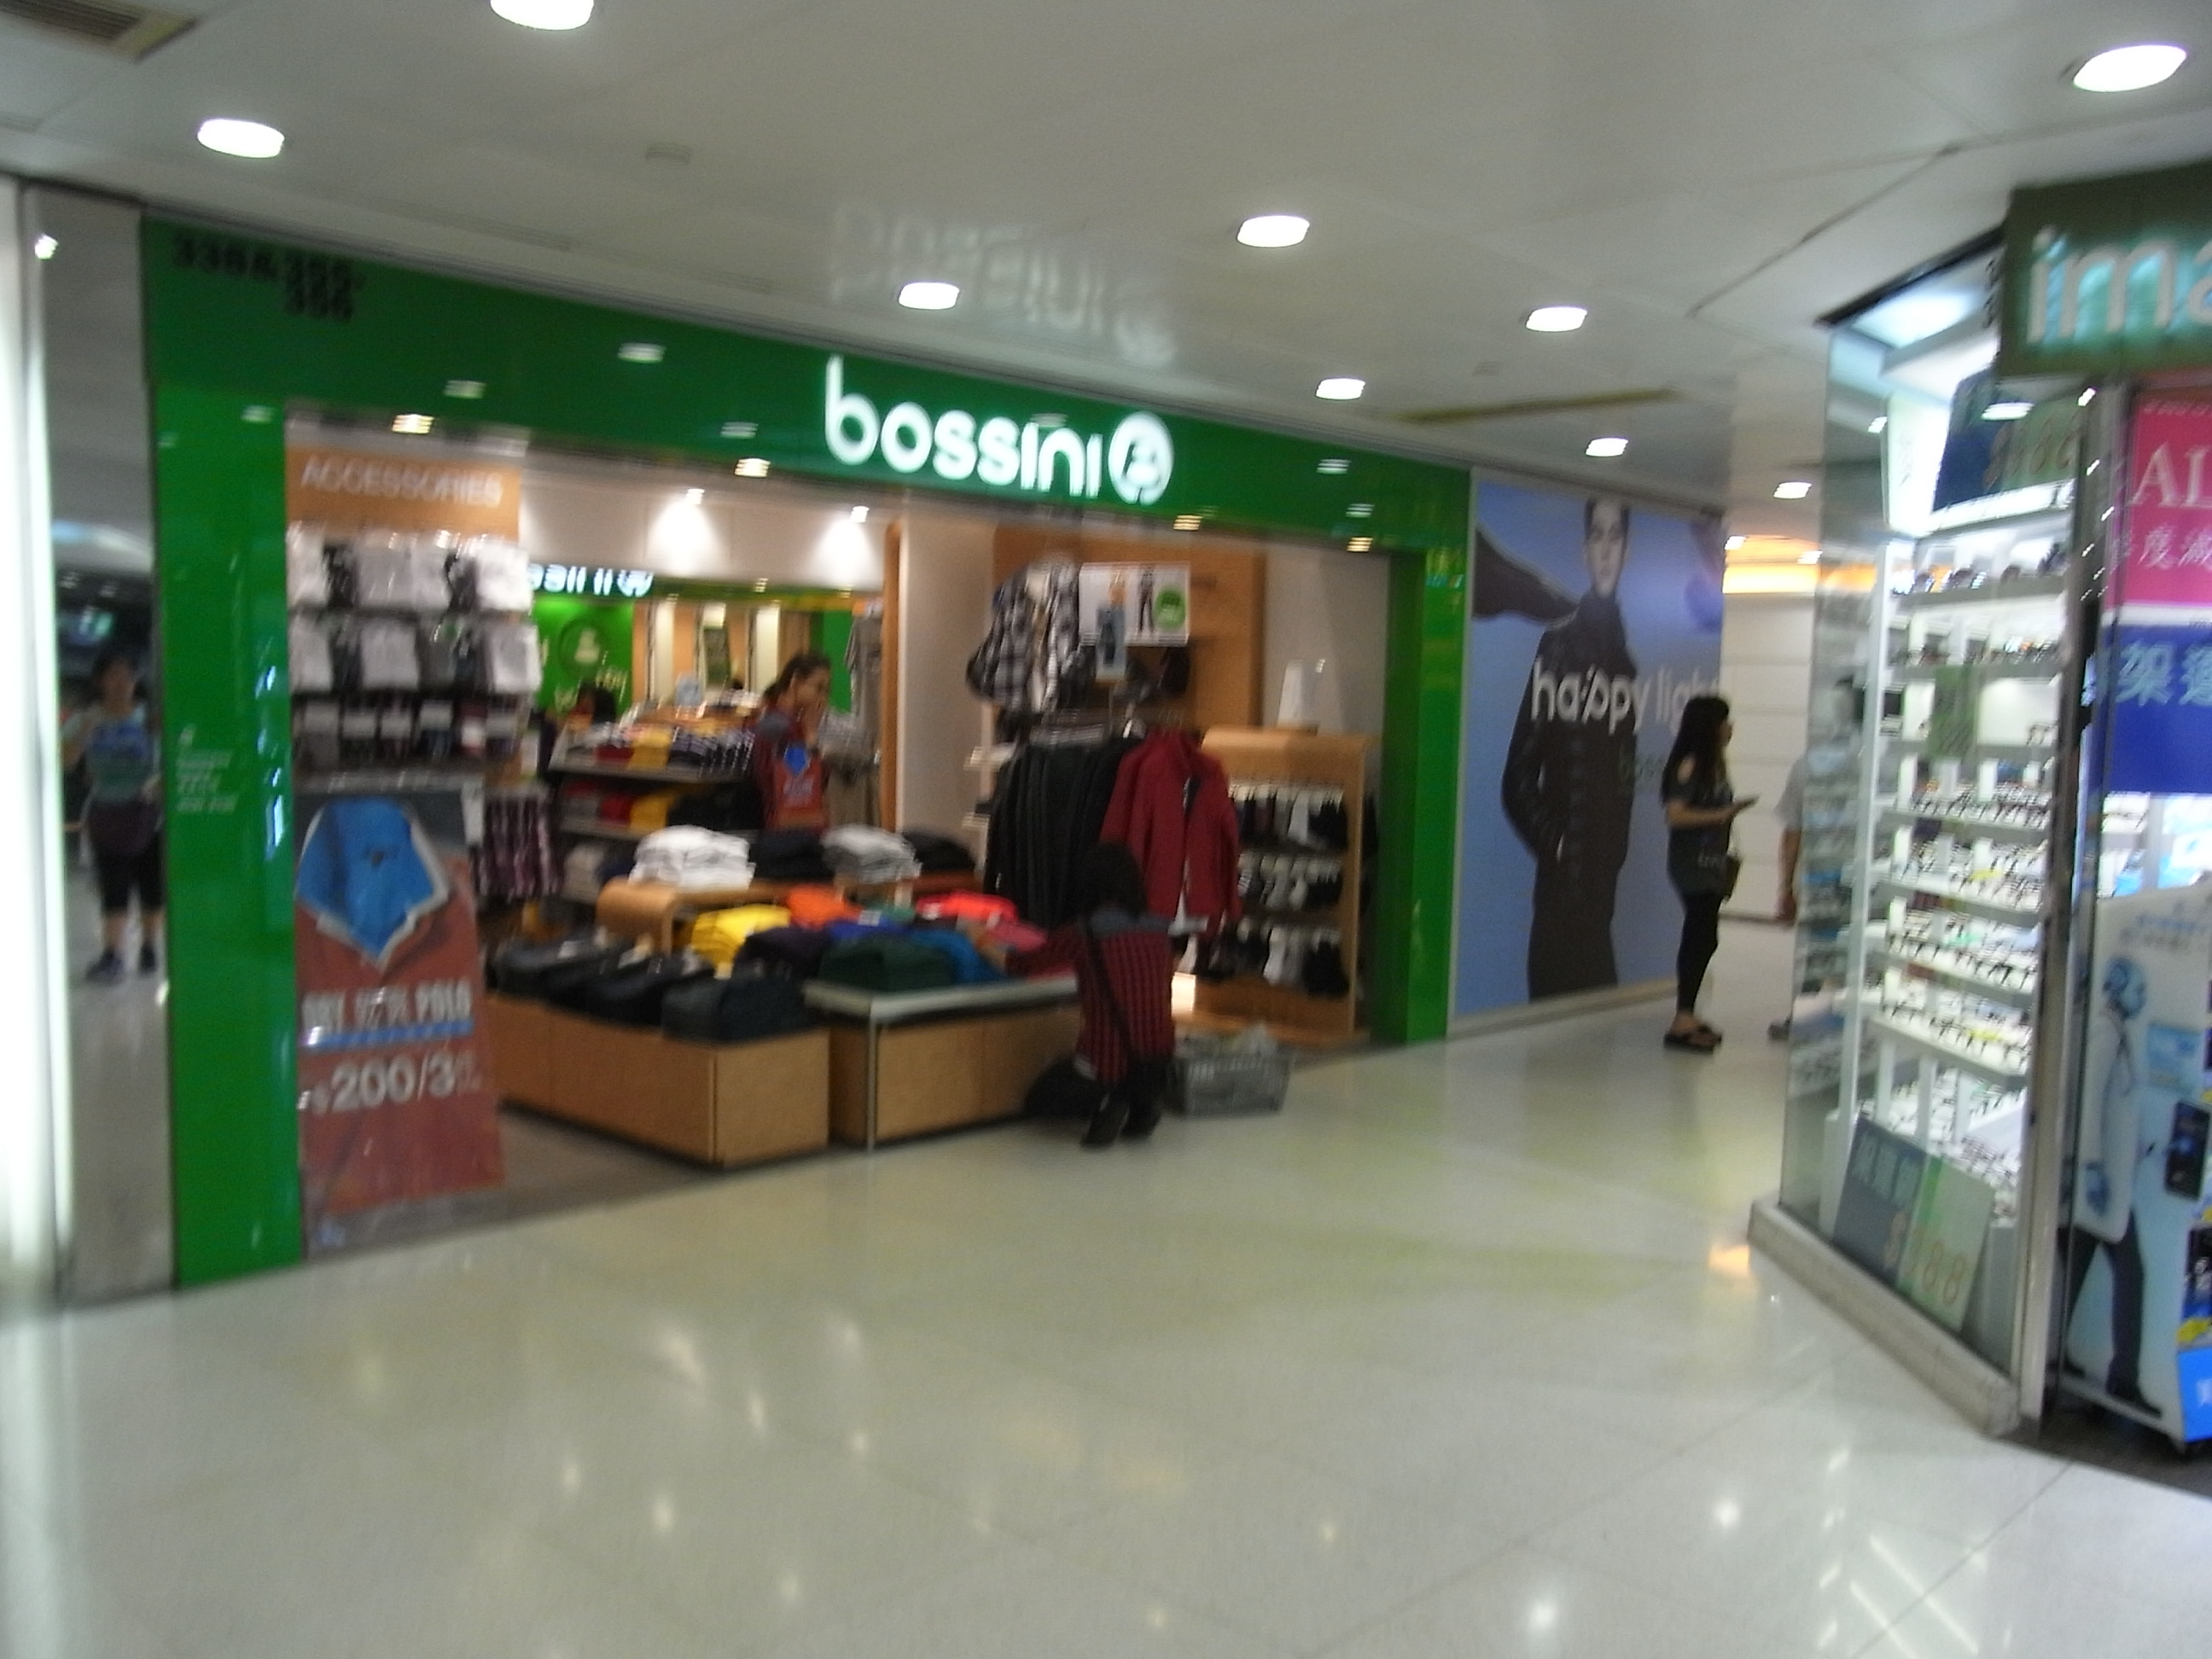 File:HK Chai Wan New Jade Gardens Shopping Arcade Shop Bossini Sept 2012.